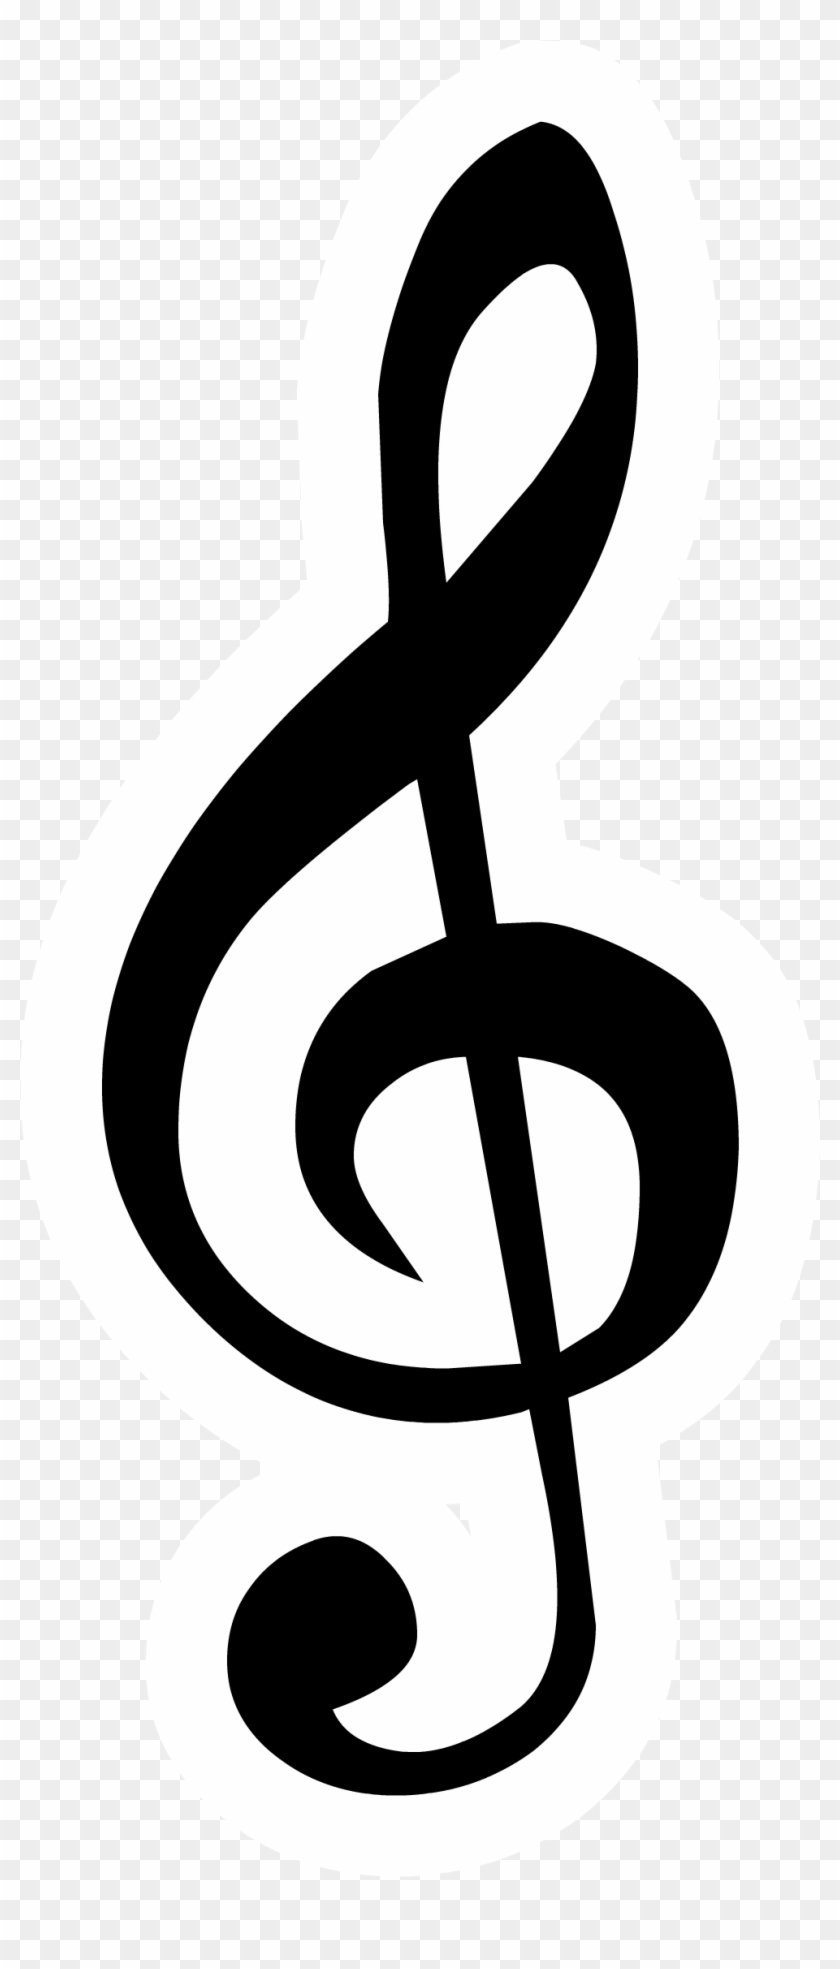 Treble Clef Pin Club Penguin Wiki The Free Editable - Music Notes And Signs #86870